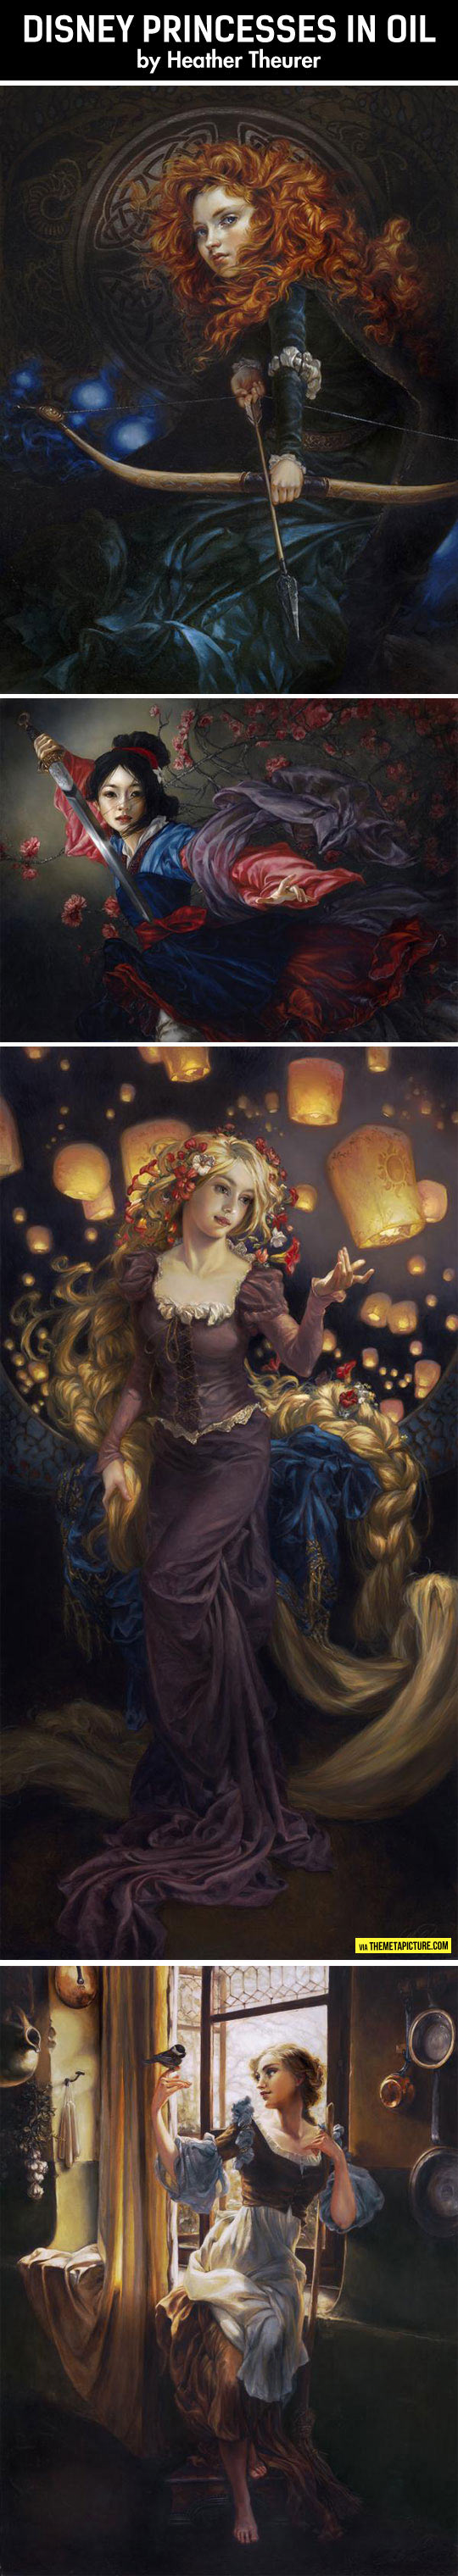 cute-Disney-princesses-oil-paintings